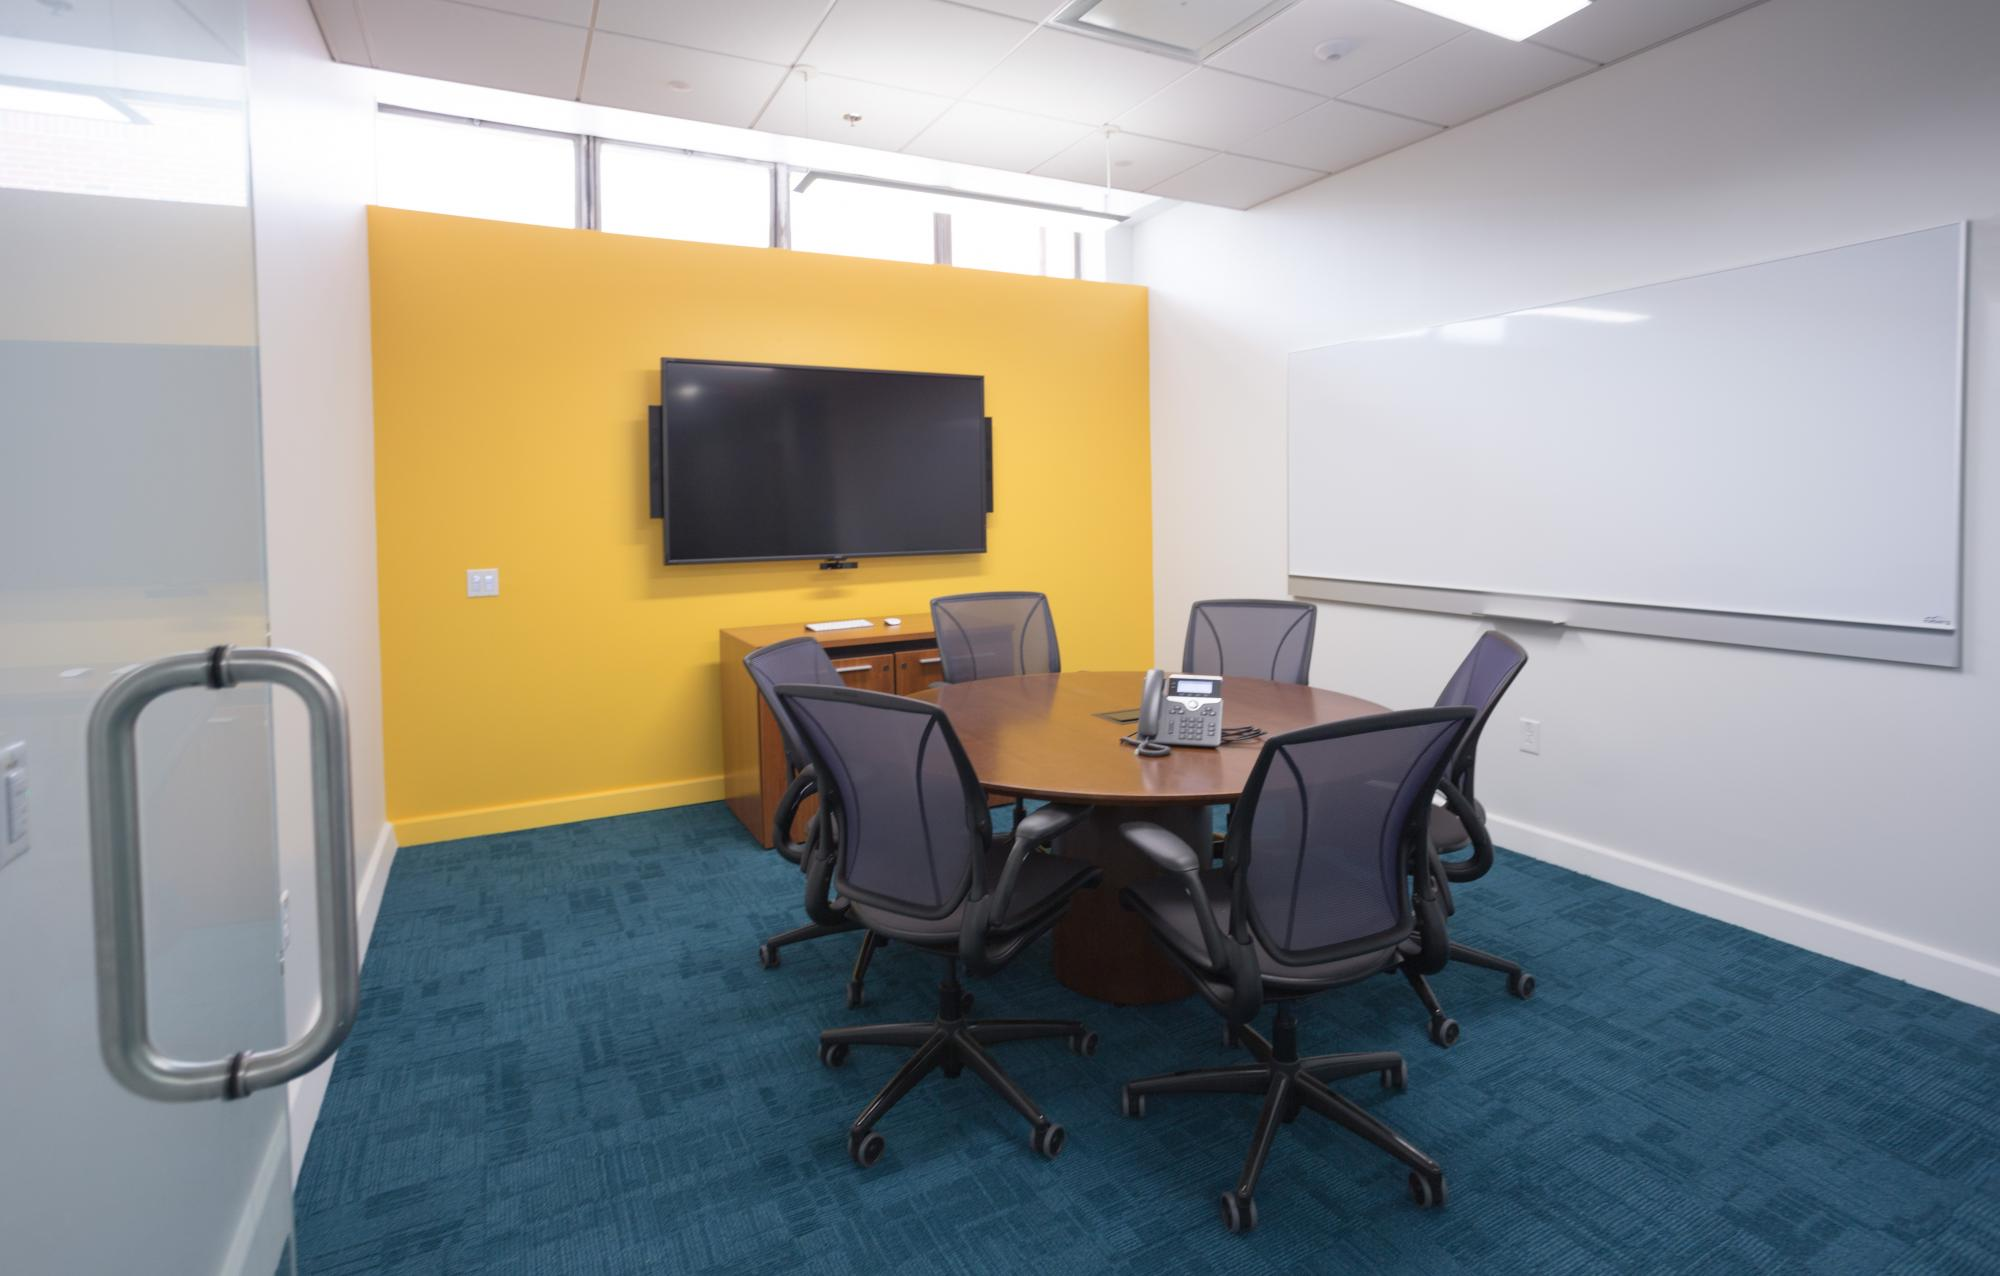 A faculty workroom with wall mounted screen, whiteboard, telephone, table and 6 chairs